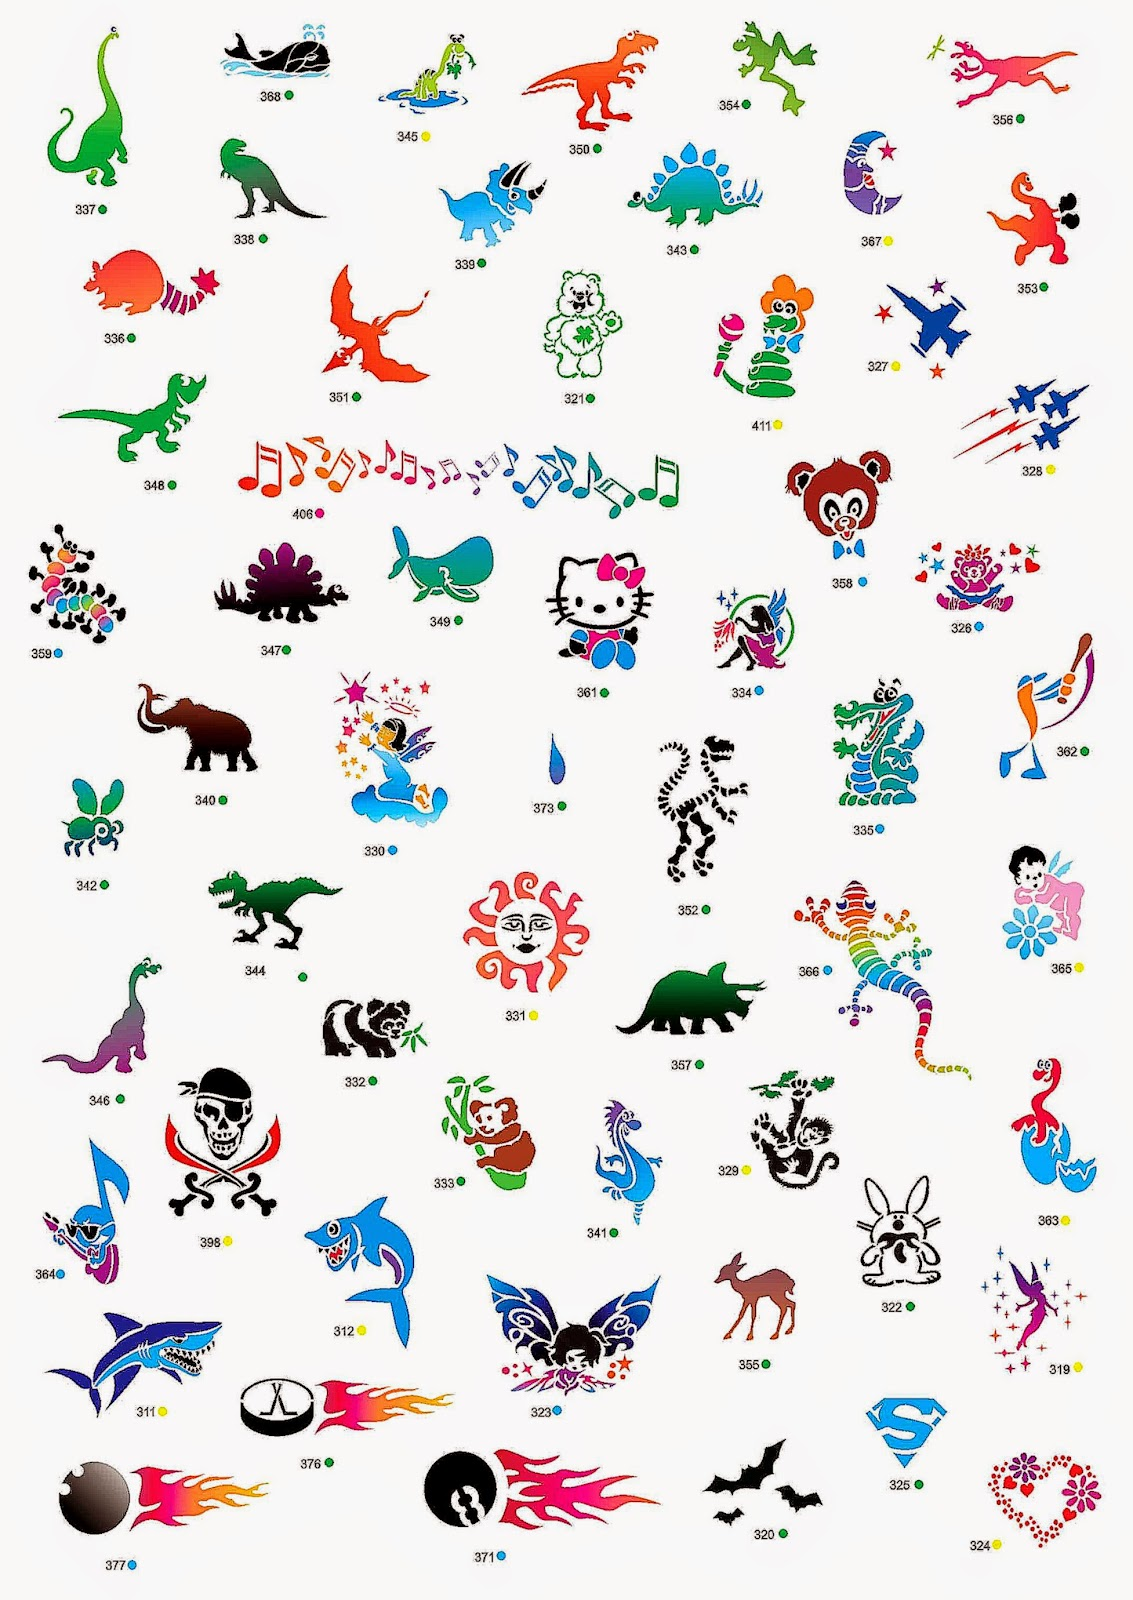 Temporary tattoos for kids  part 1  Image Gallery 264  Amazing